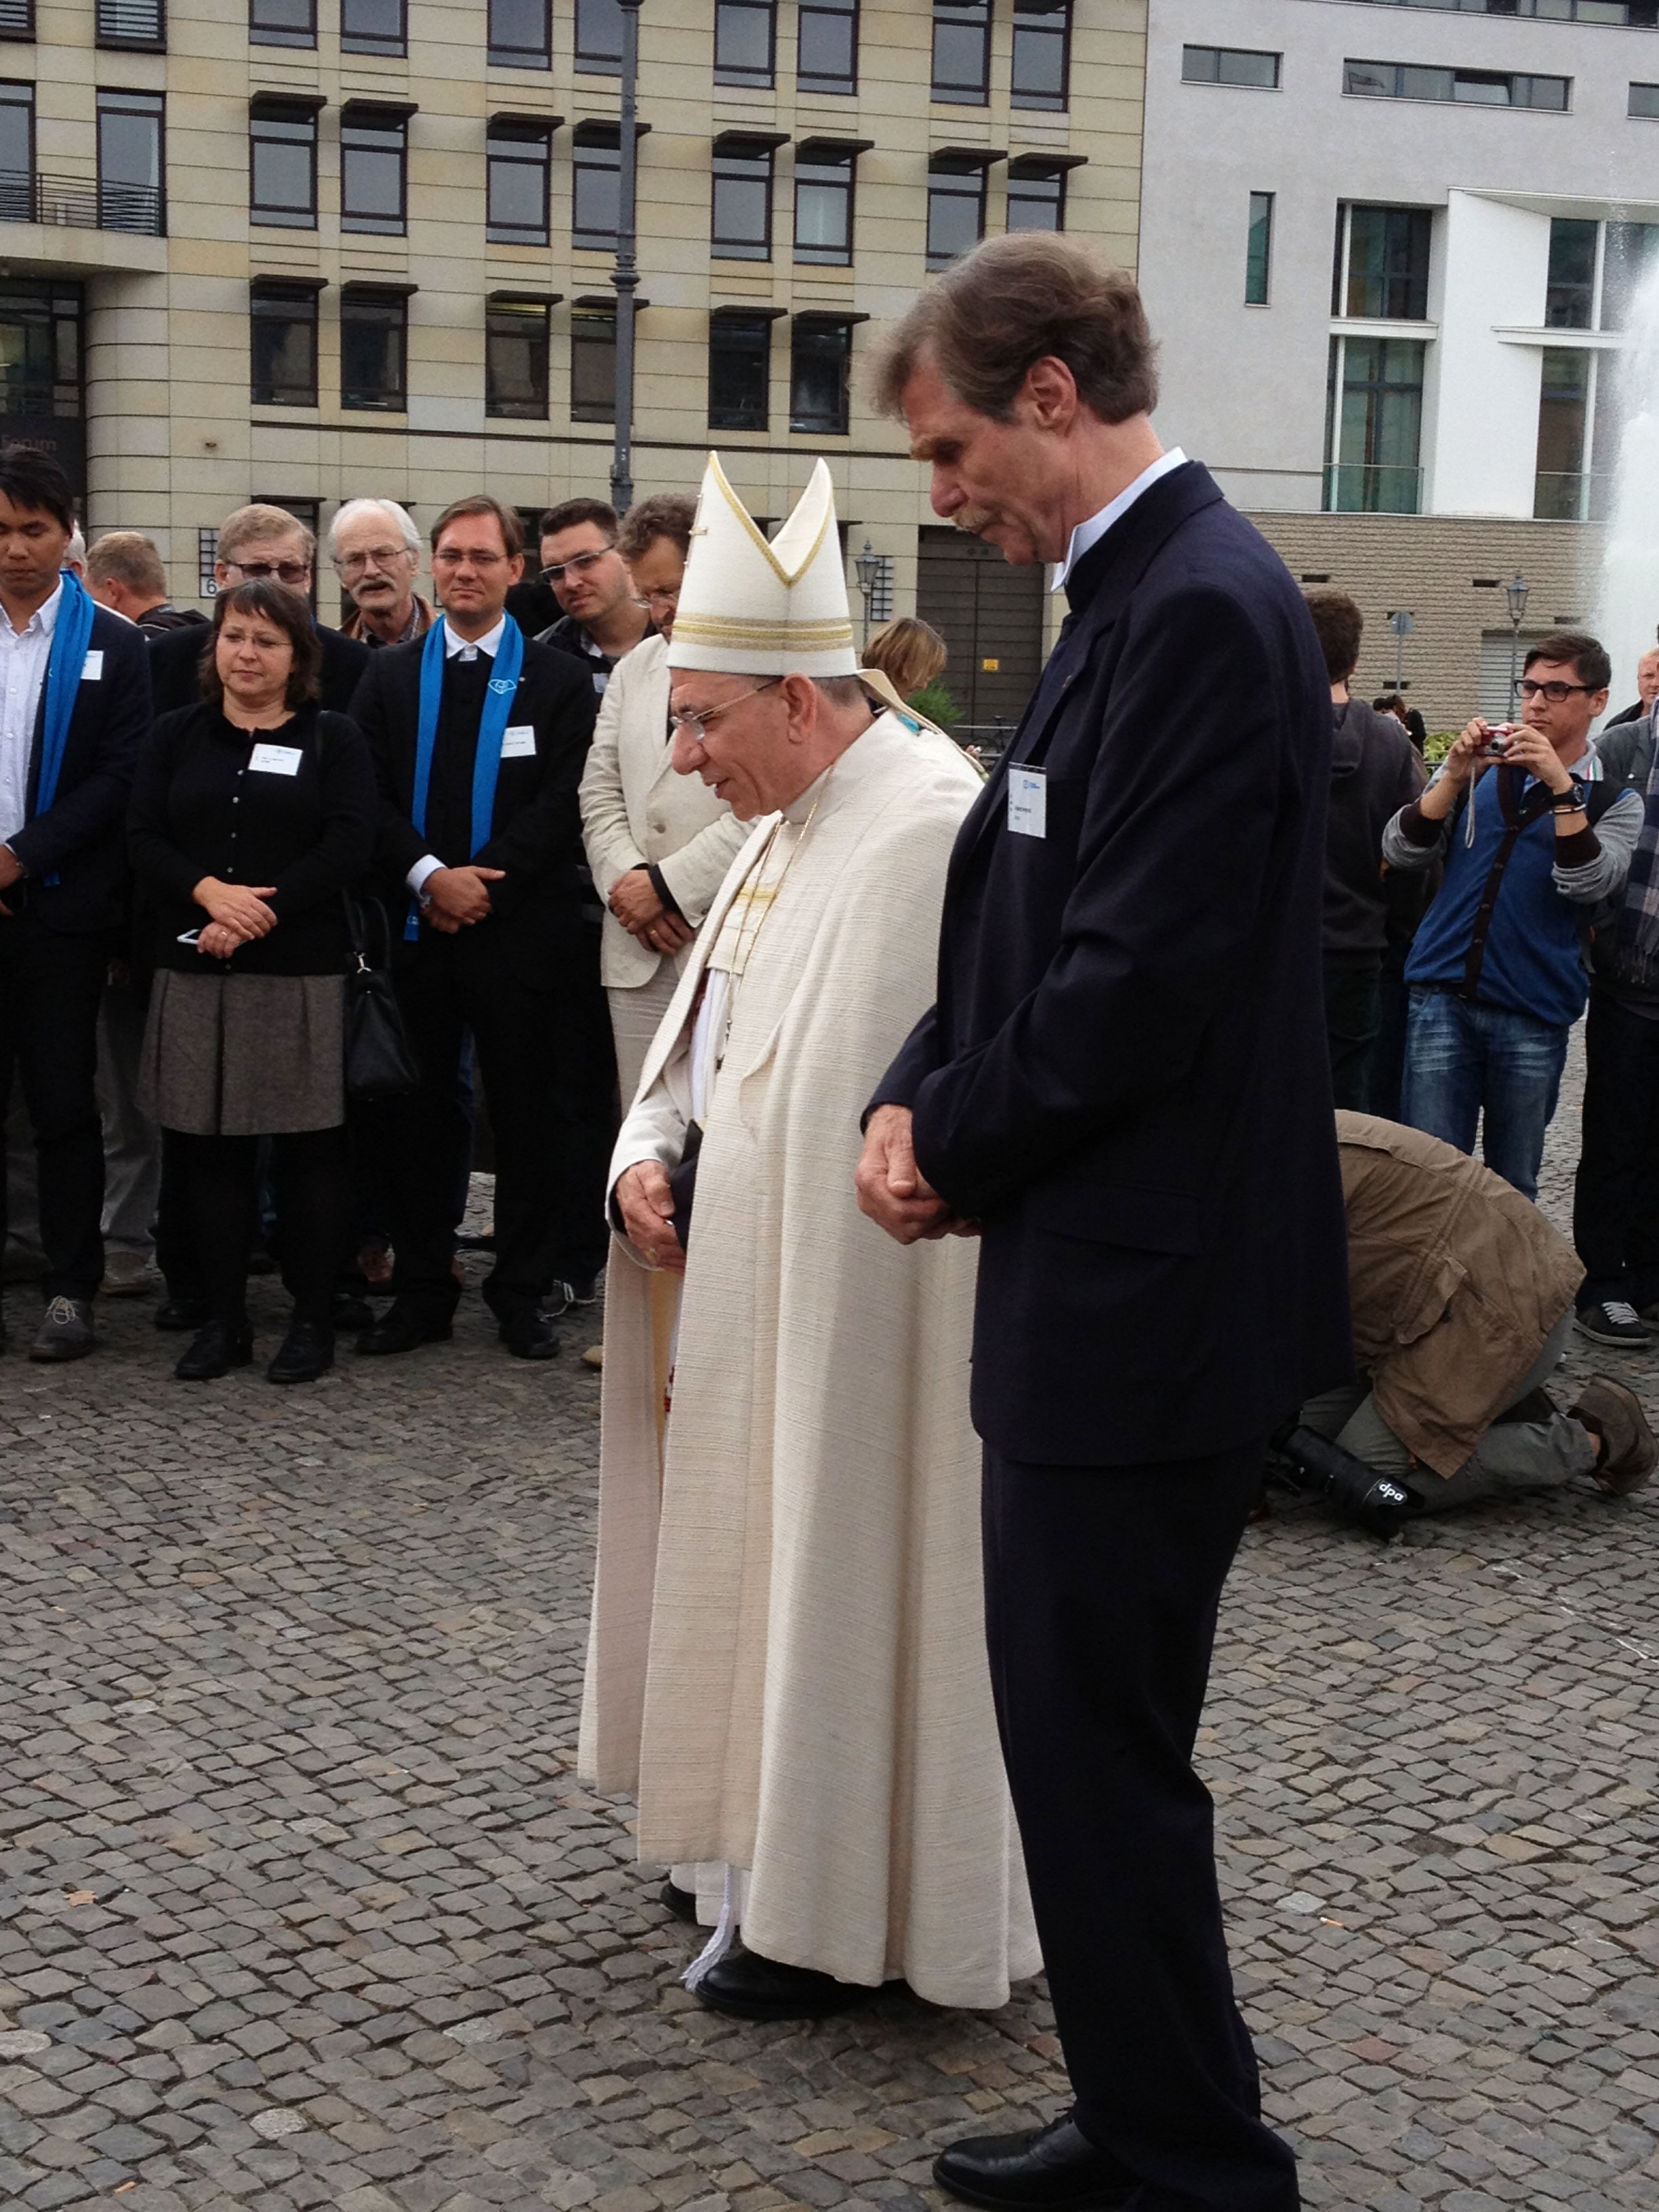 Bishop Younan and Director of Berliner Missionswerk Rev. Roland Herpich led a prayer at the Brandenburg Gate in remembrance of the start of World War I. (© BMW)